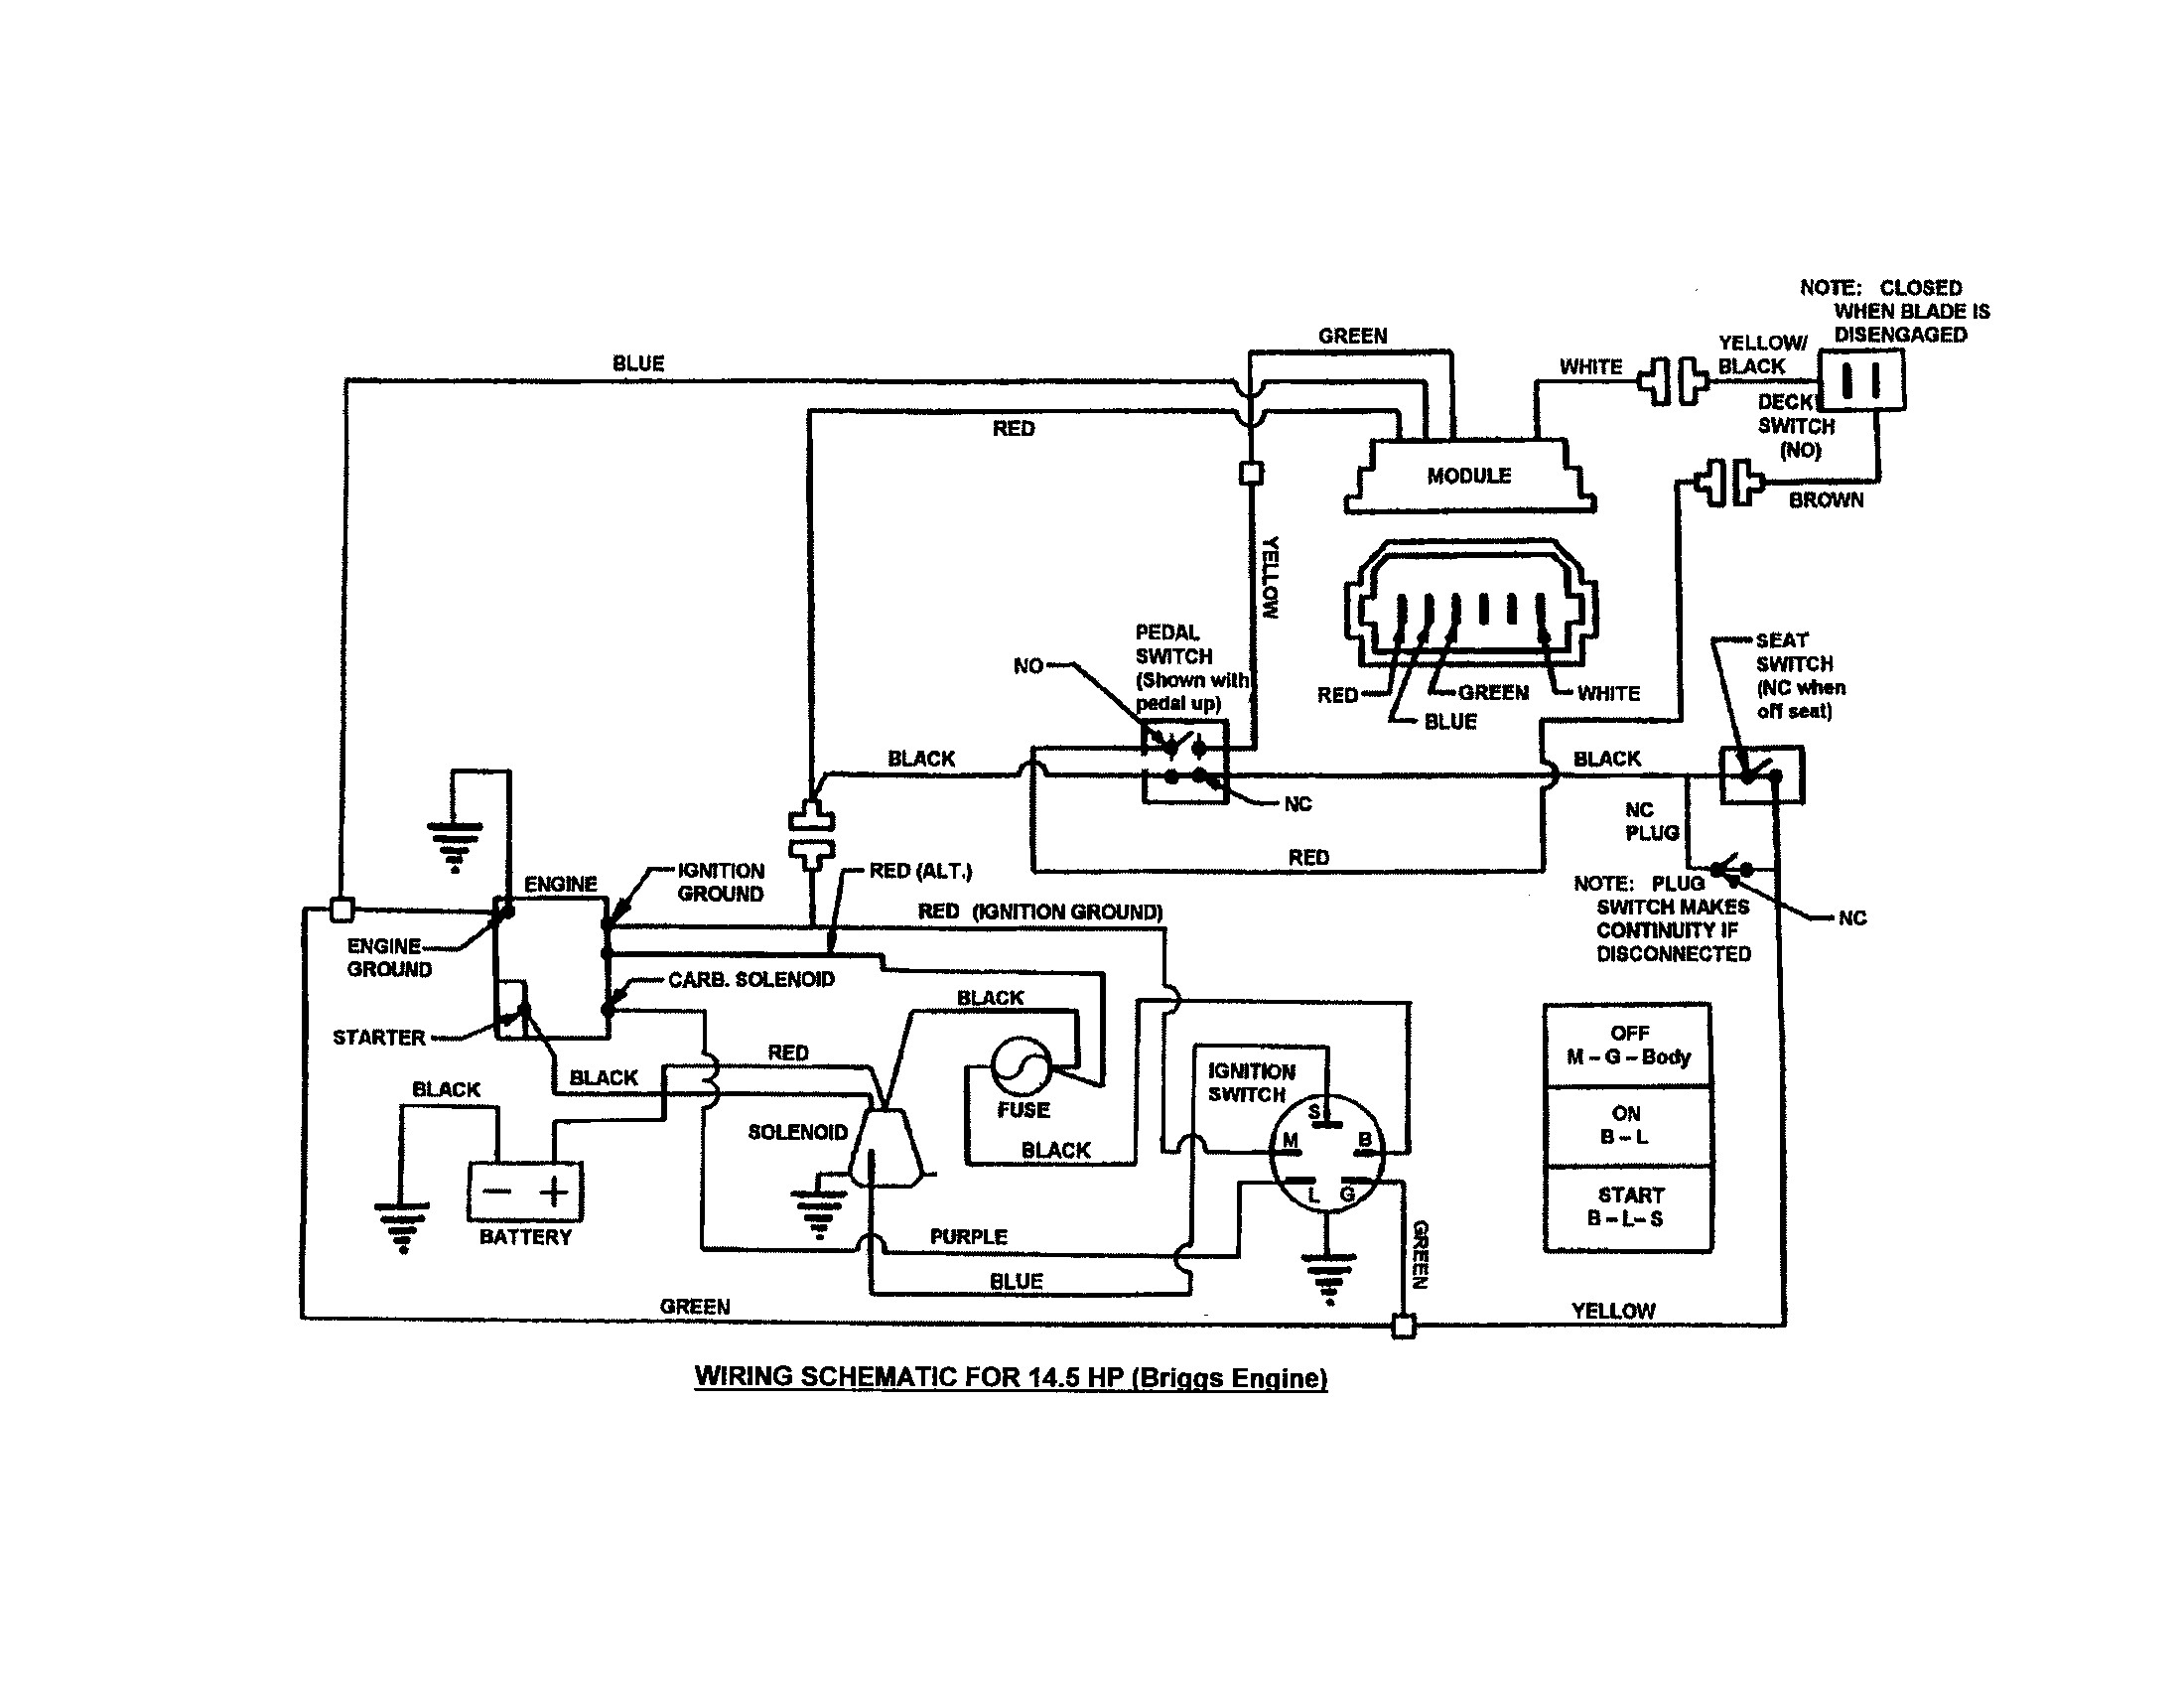 Wiring Diagram For Ignition Switch On 16 Hp Lawn Tractor